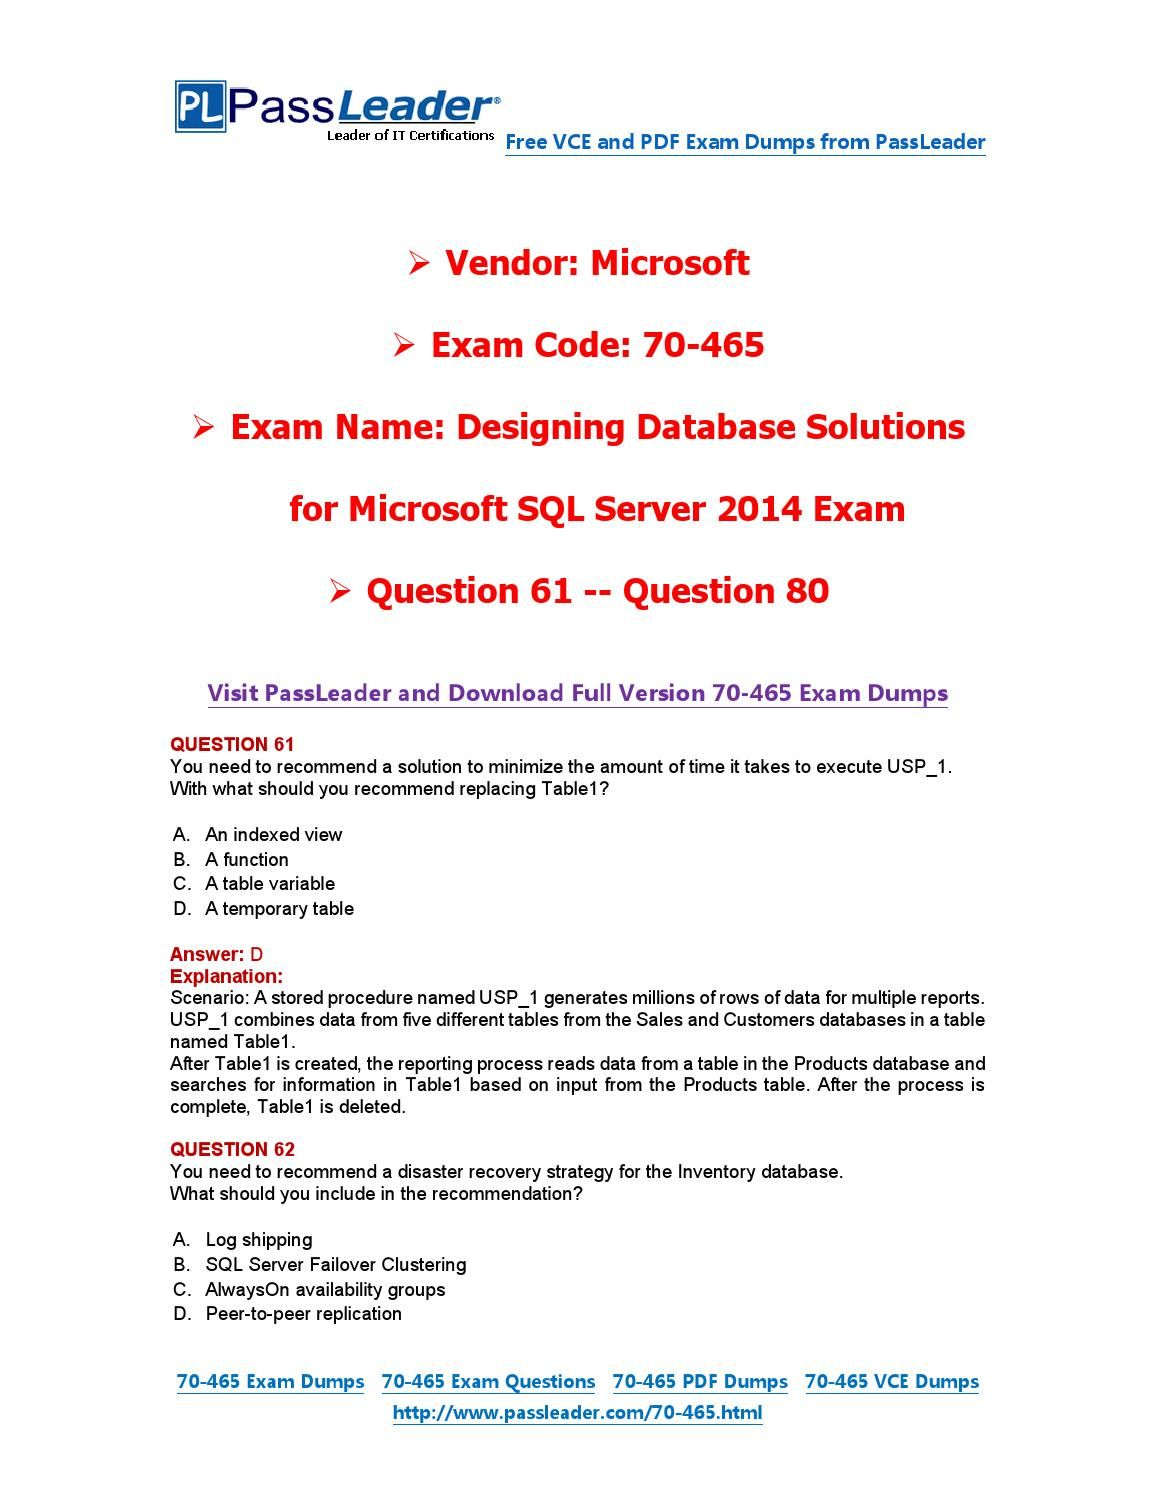 70 465 Exam Dumps With Pdf And Vce Download 61 80 70 465 Exam